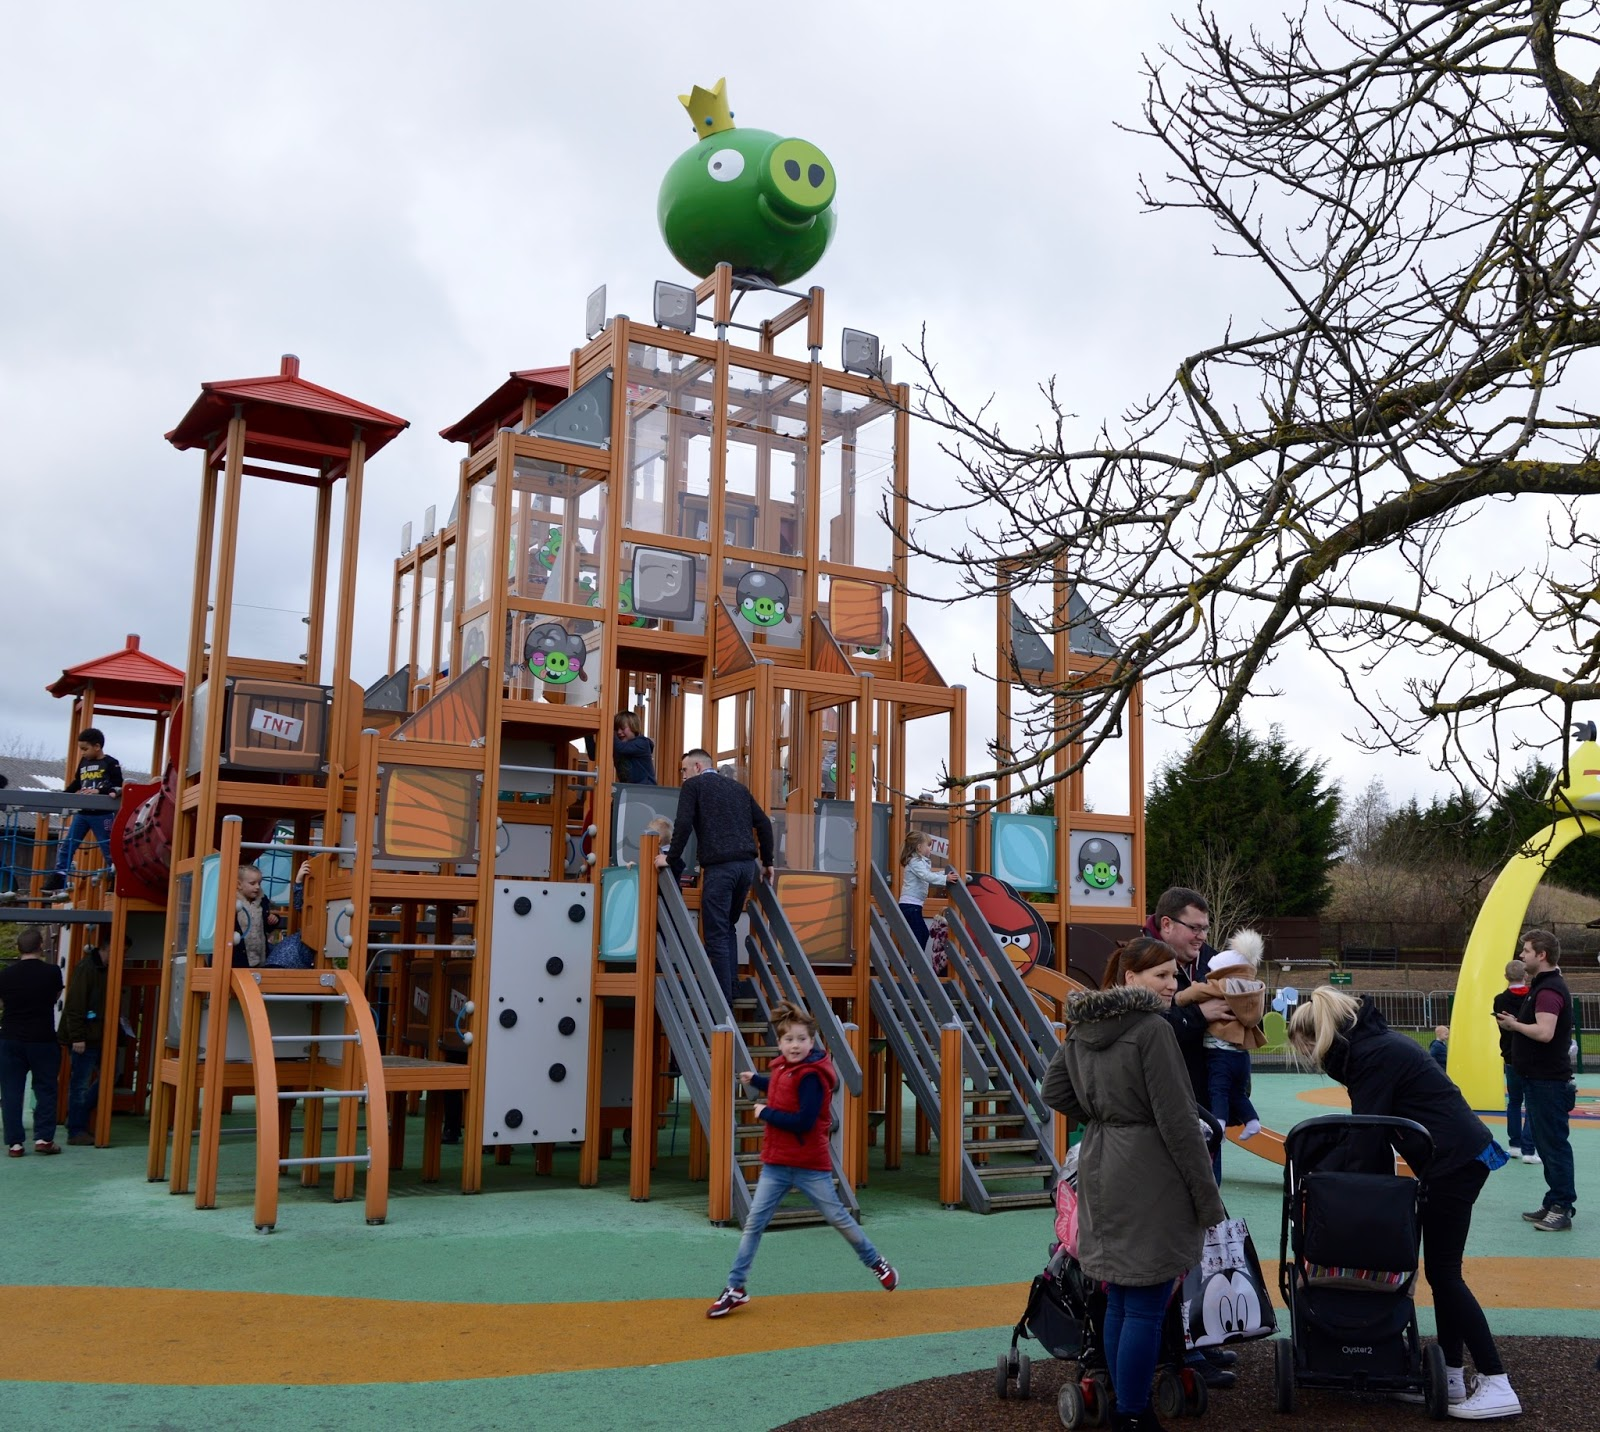 Visiting Angry Birds Activity Park at Lightwater Valley, North Yorkshire - angry bird tower